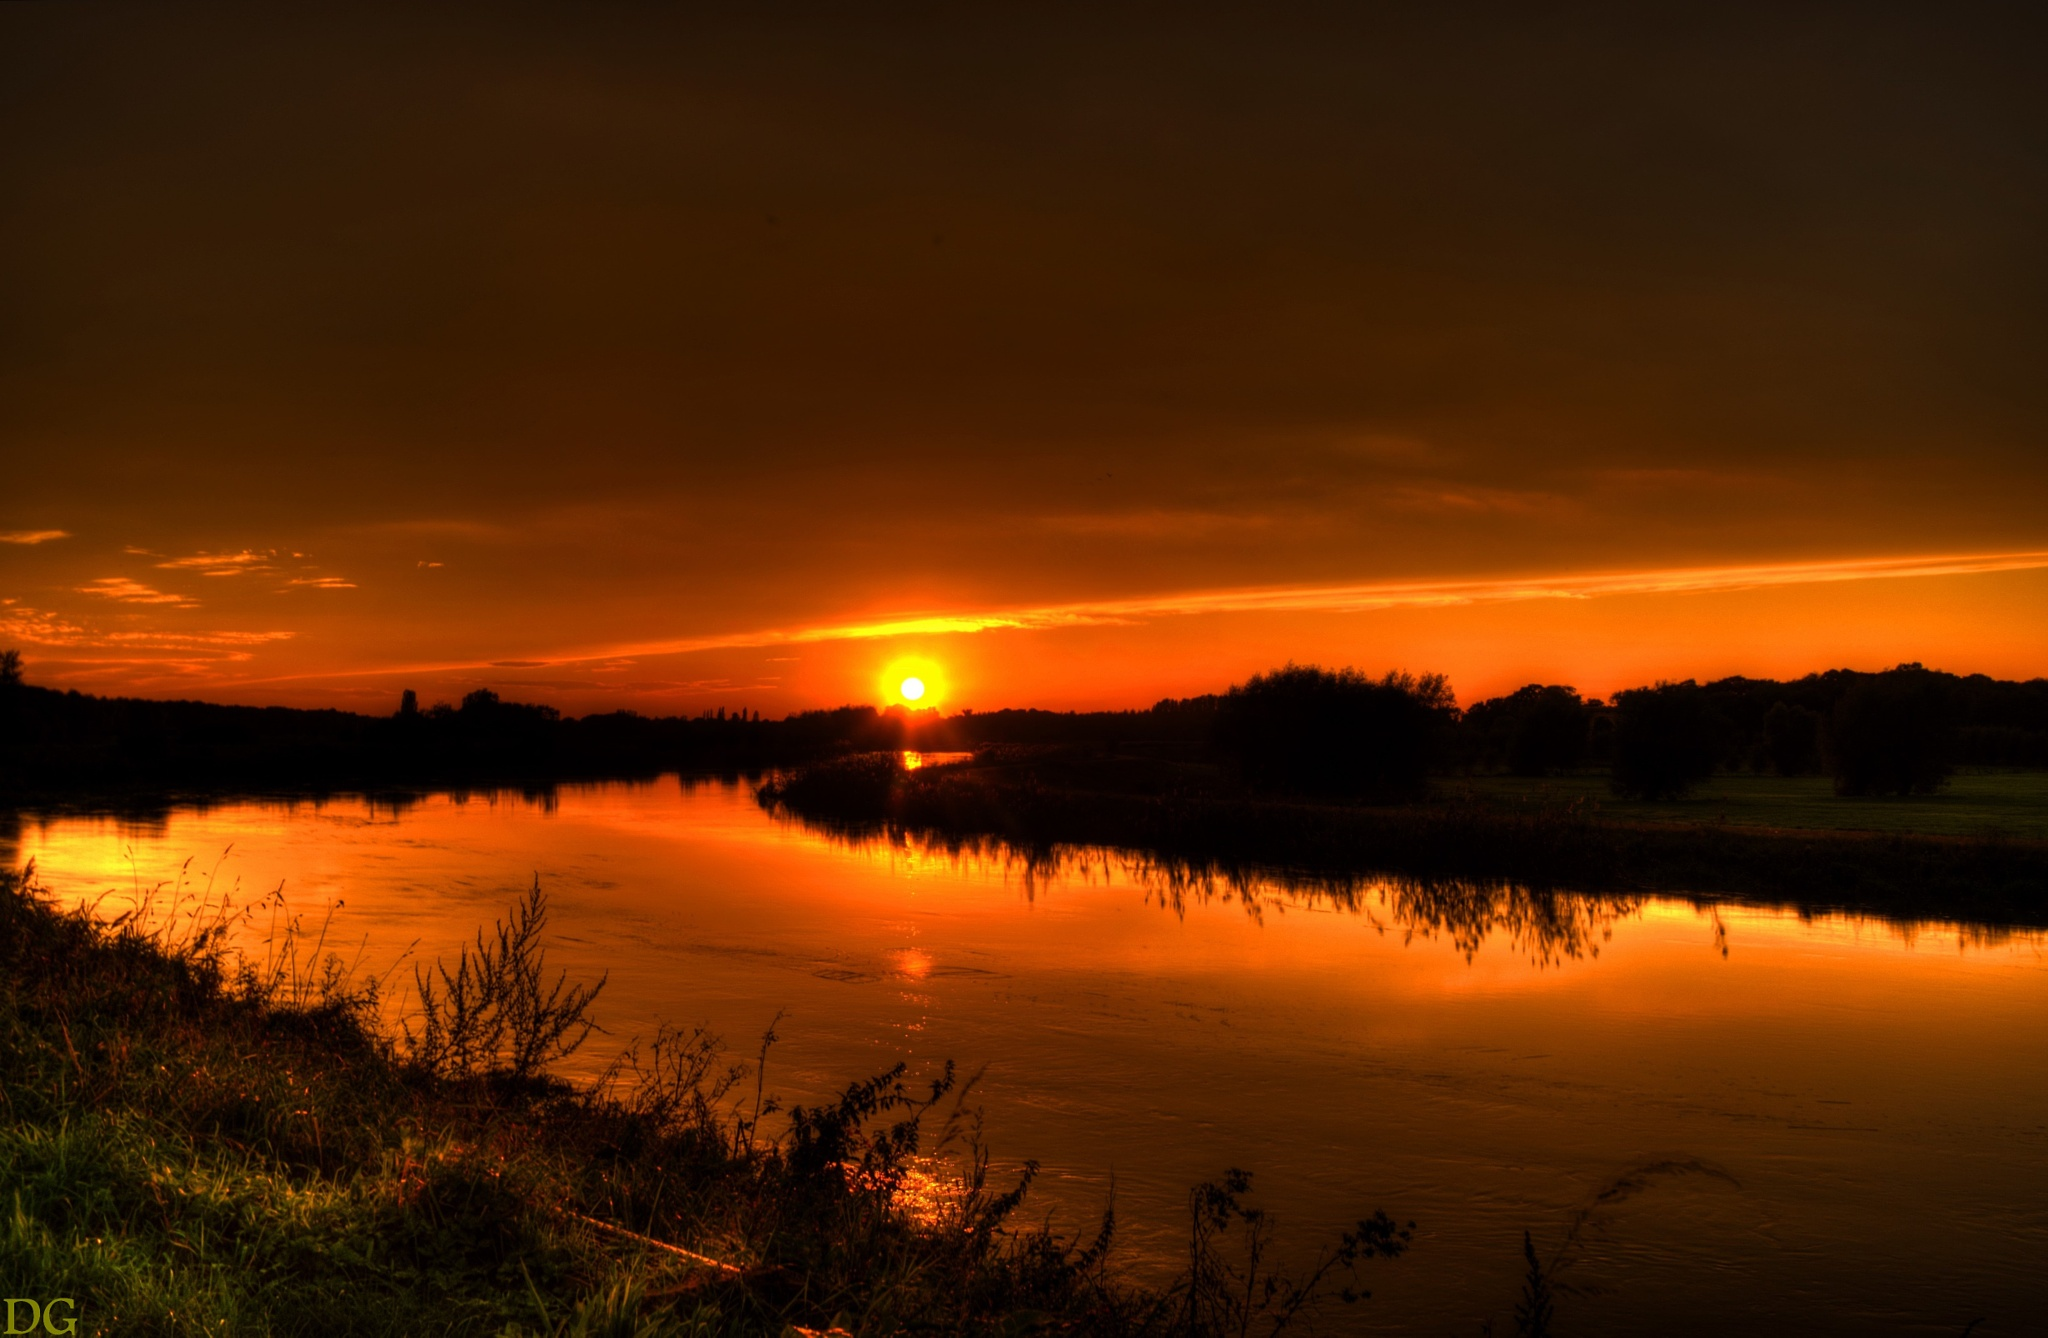 Sunset. by Dirk Gonthier